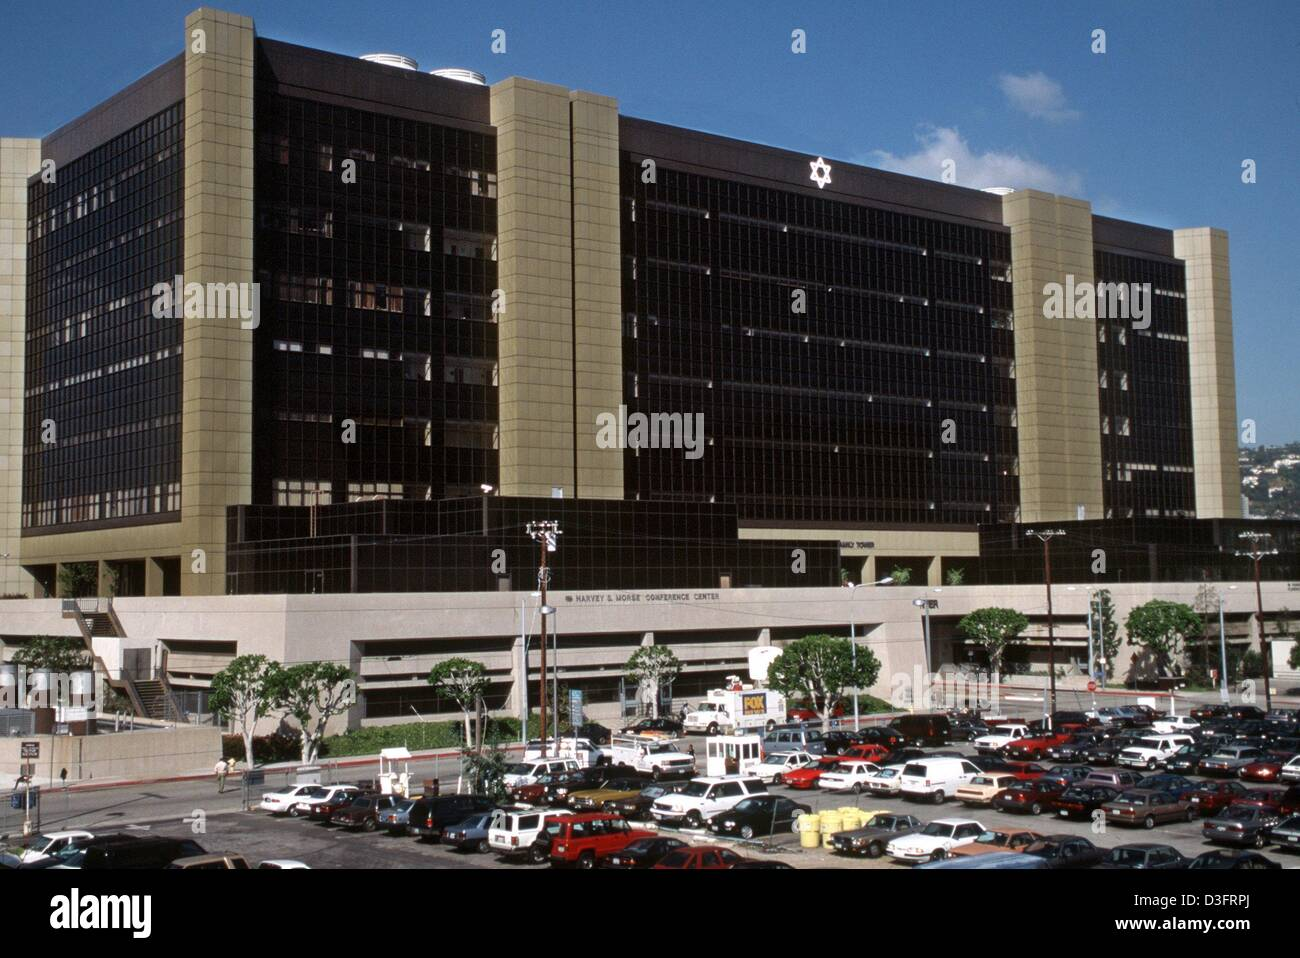 dpa files) - A view of the Cedars Sinai Medical Center in Hollywood